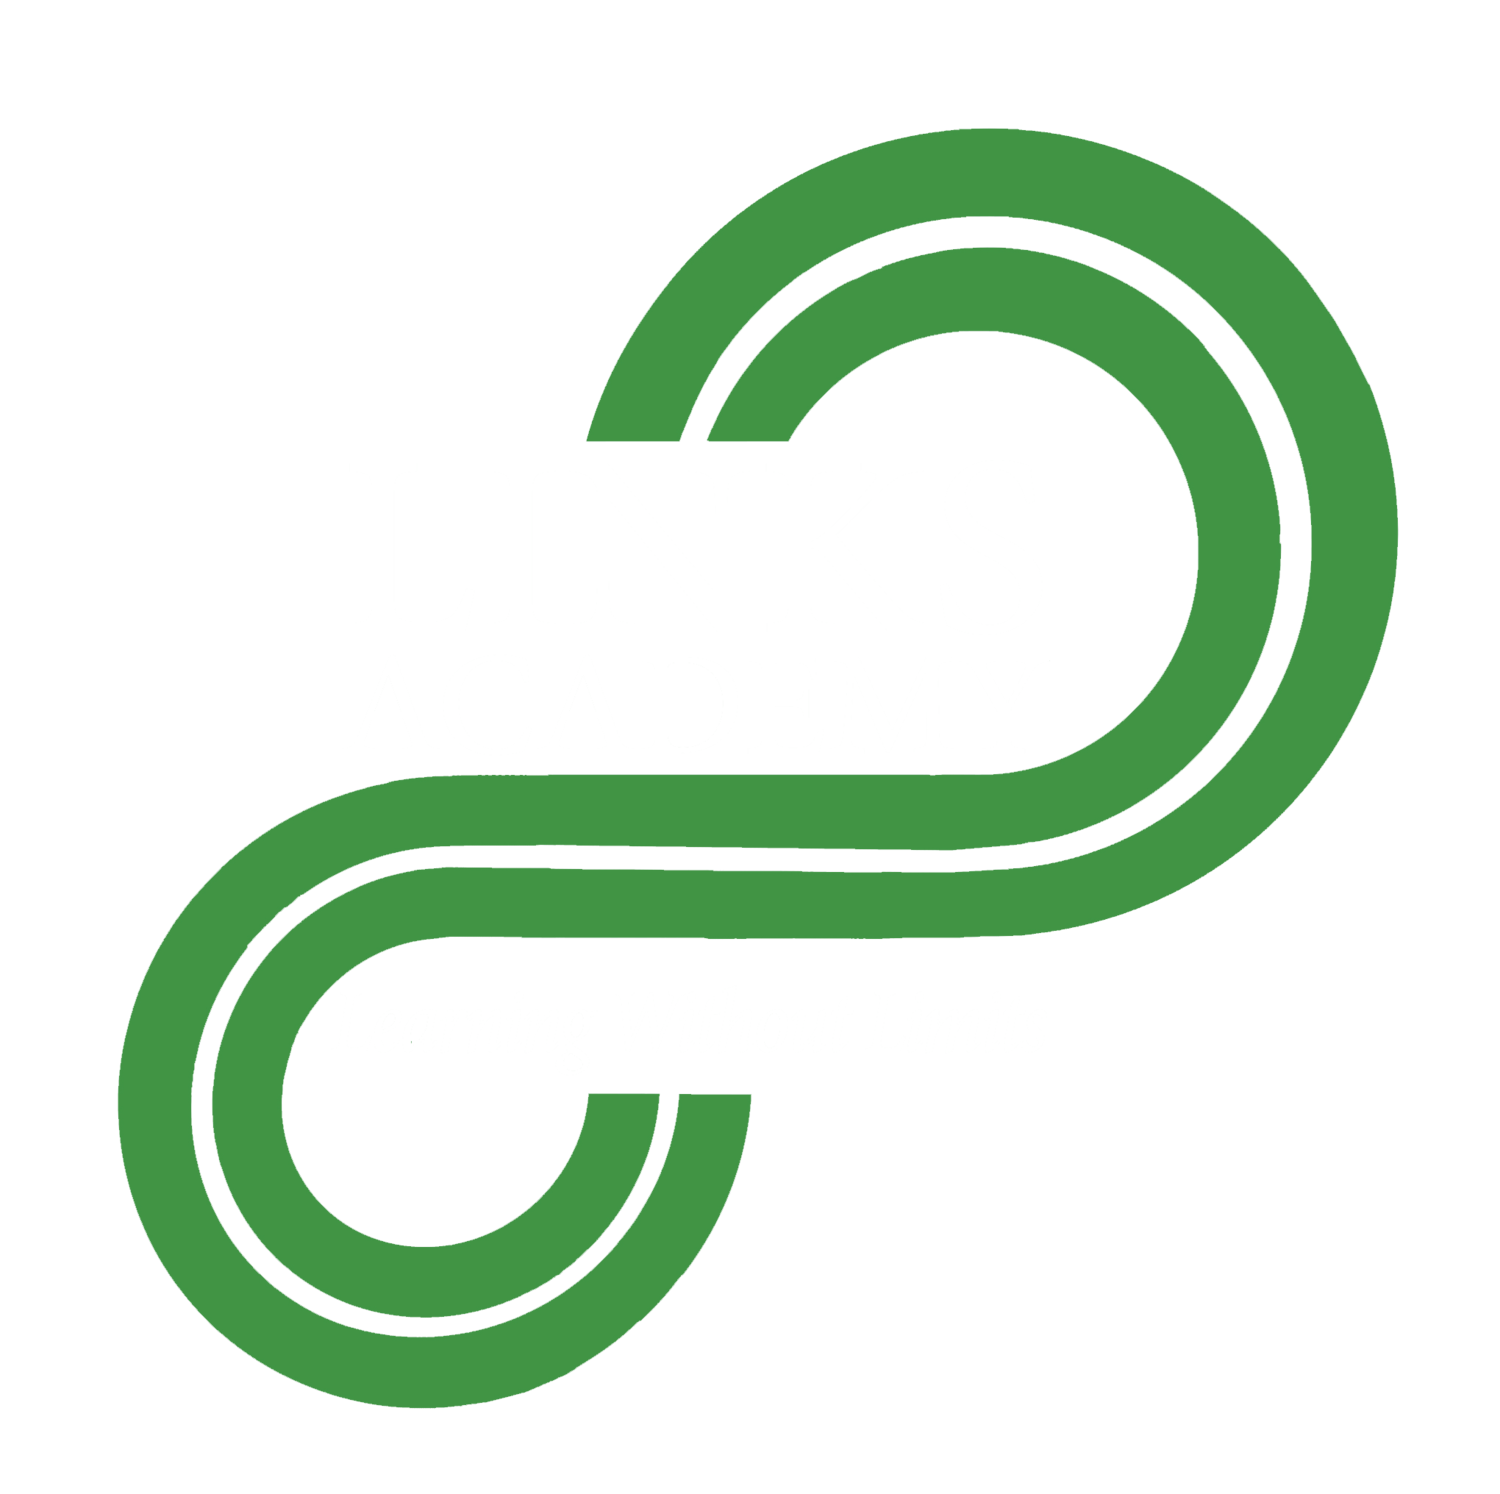 Links Academy